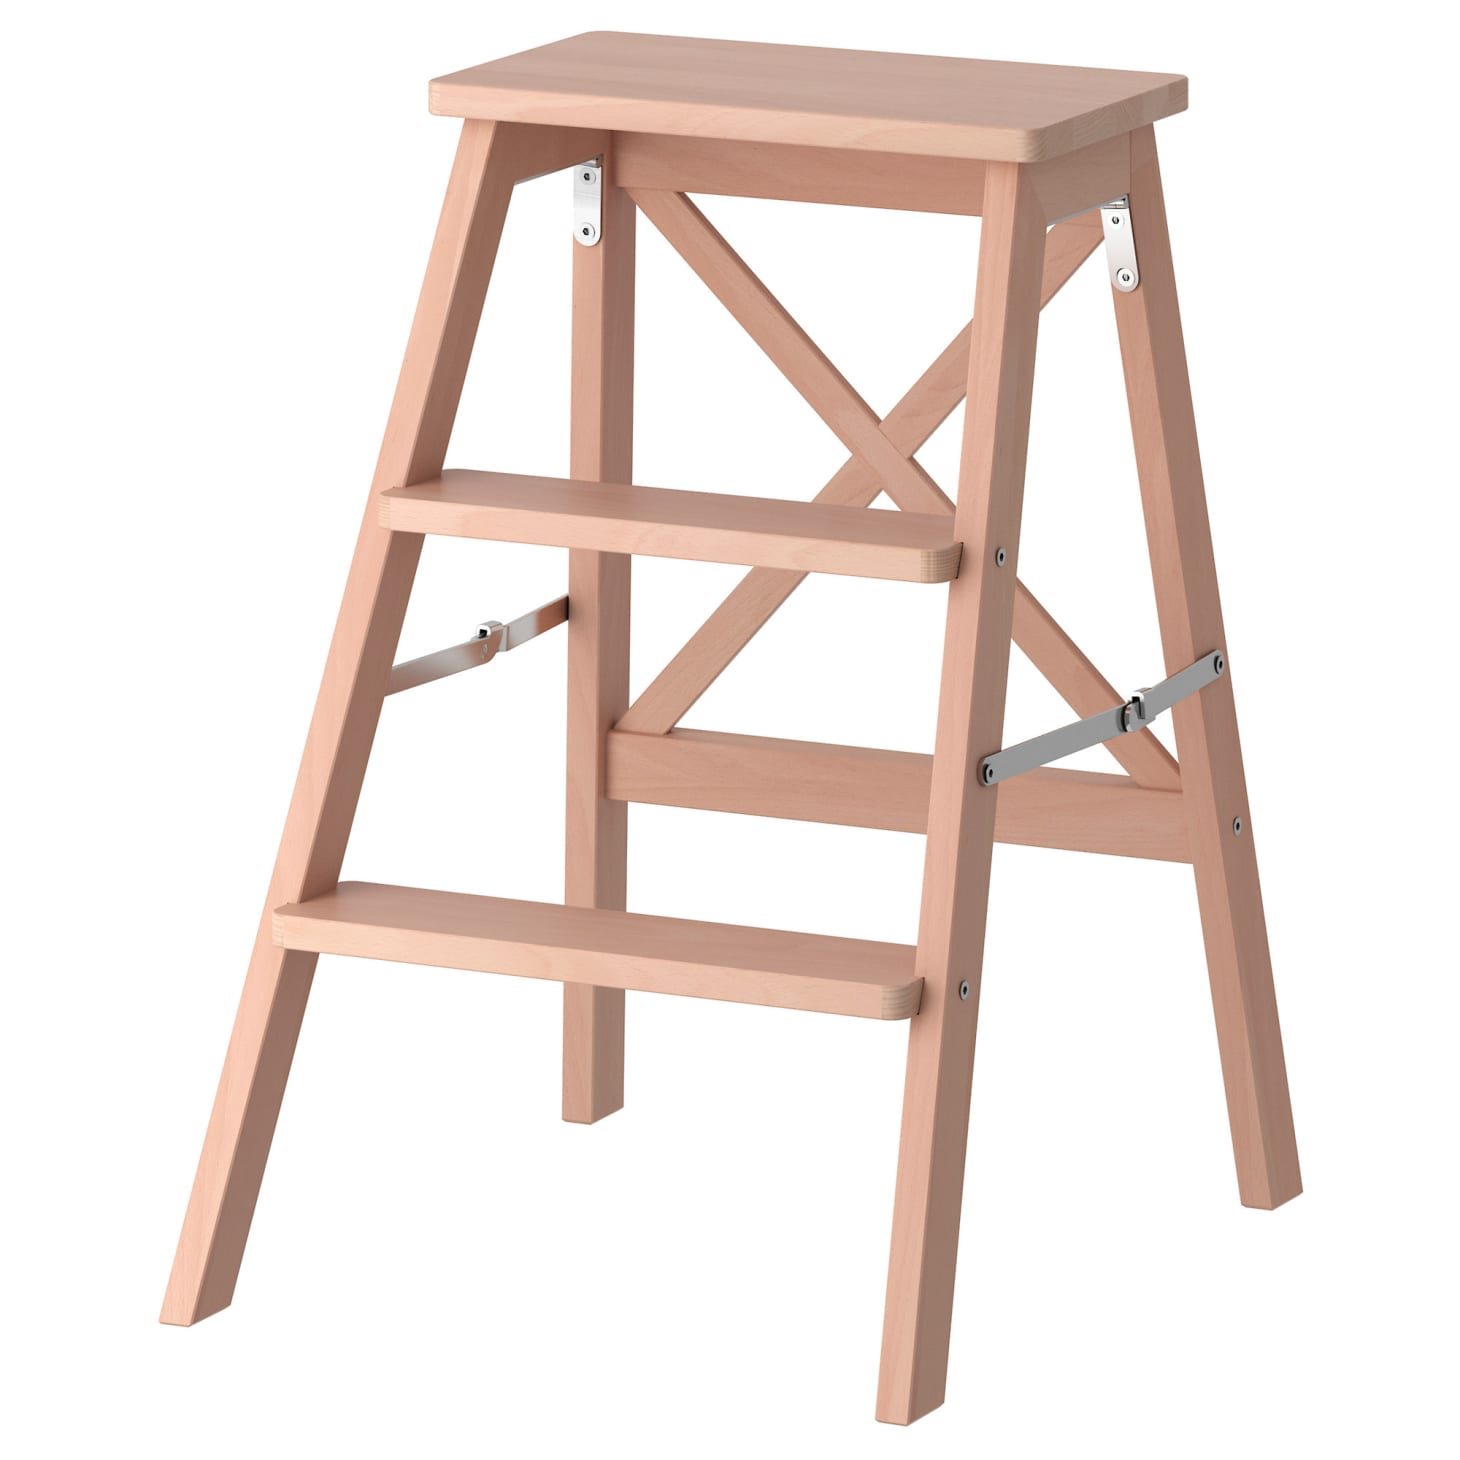 Prime Best Step Stools And Ladders To Help You Reach New Heights Pdpeps Interior Chair Design Pdpepsorg